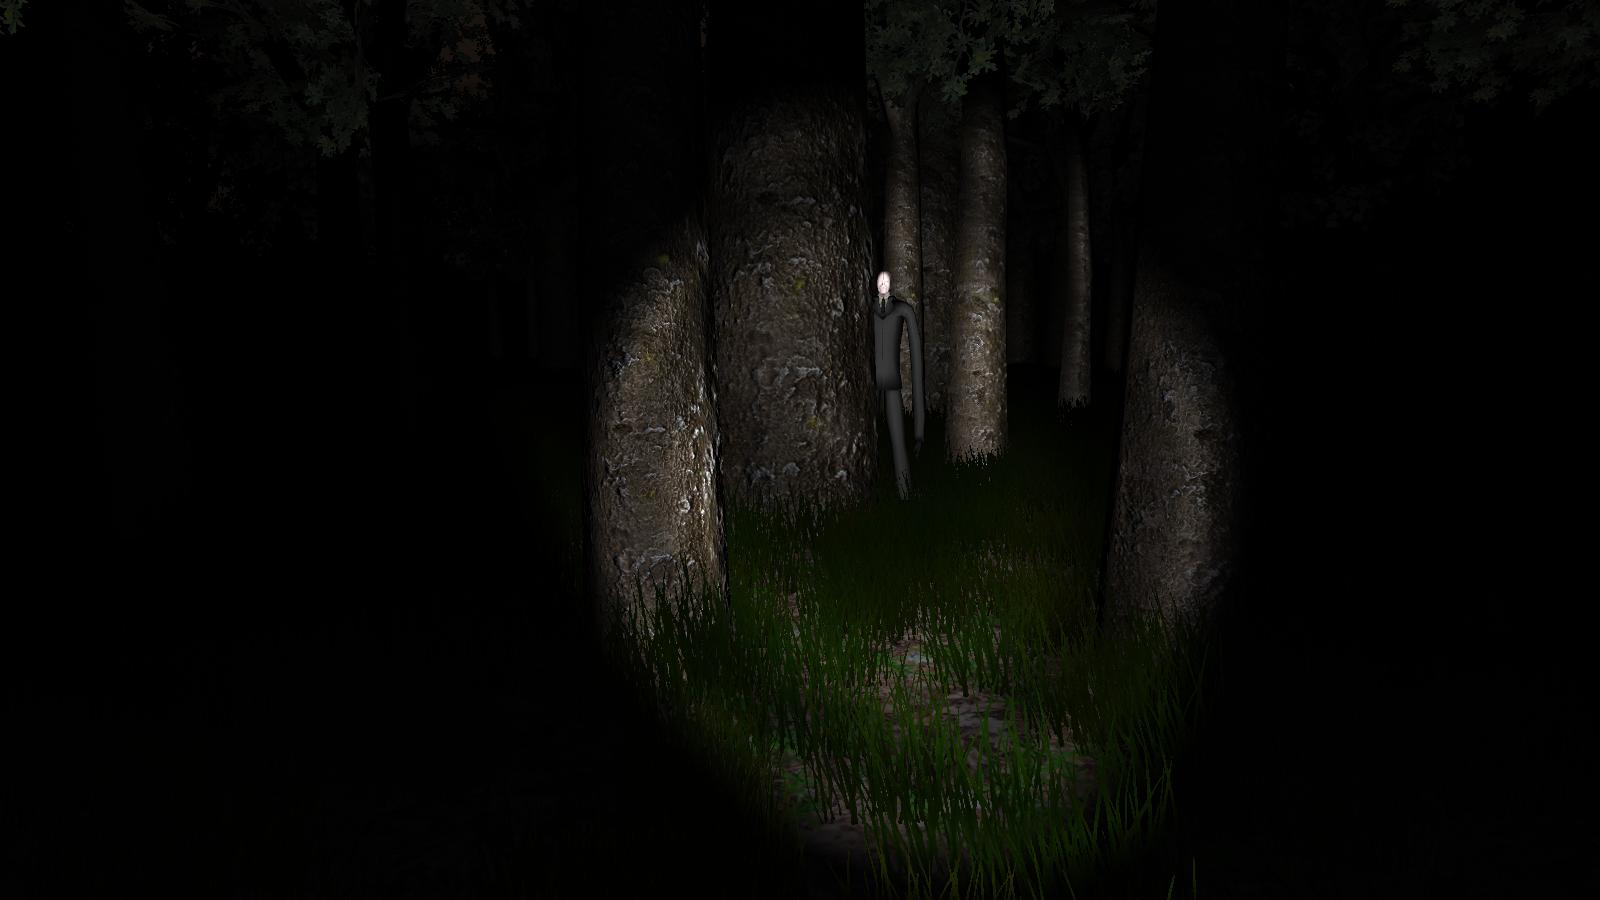 http://media.indiedb.com/images/games/1/20/19209/Slender-2012-07-23-18-02-11-26.jpg